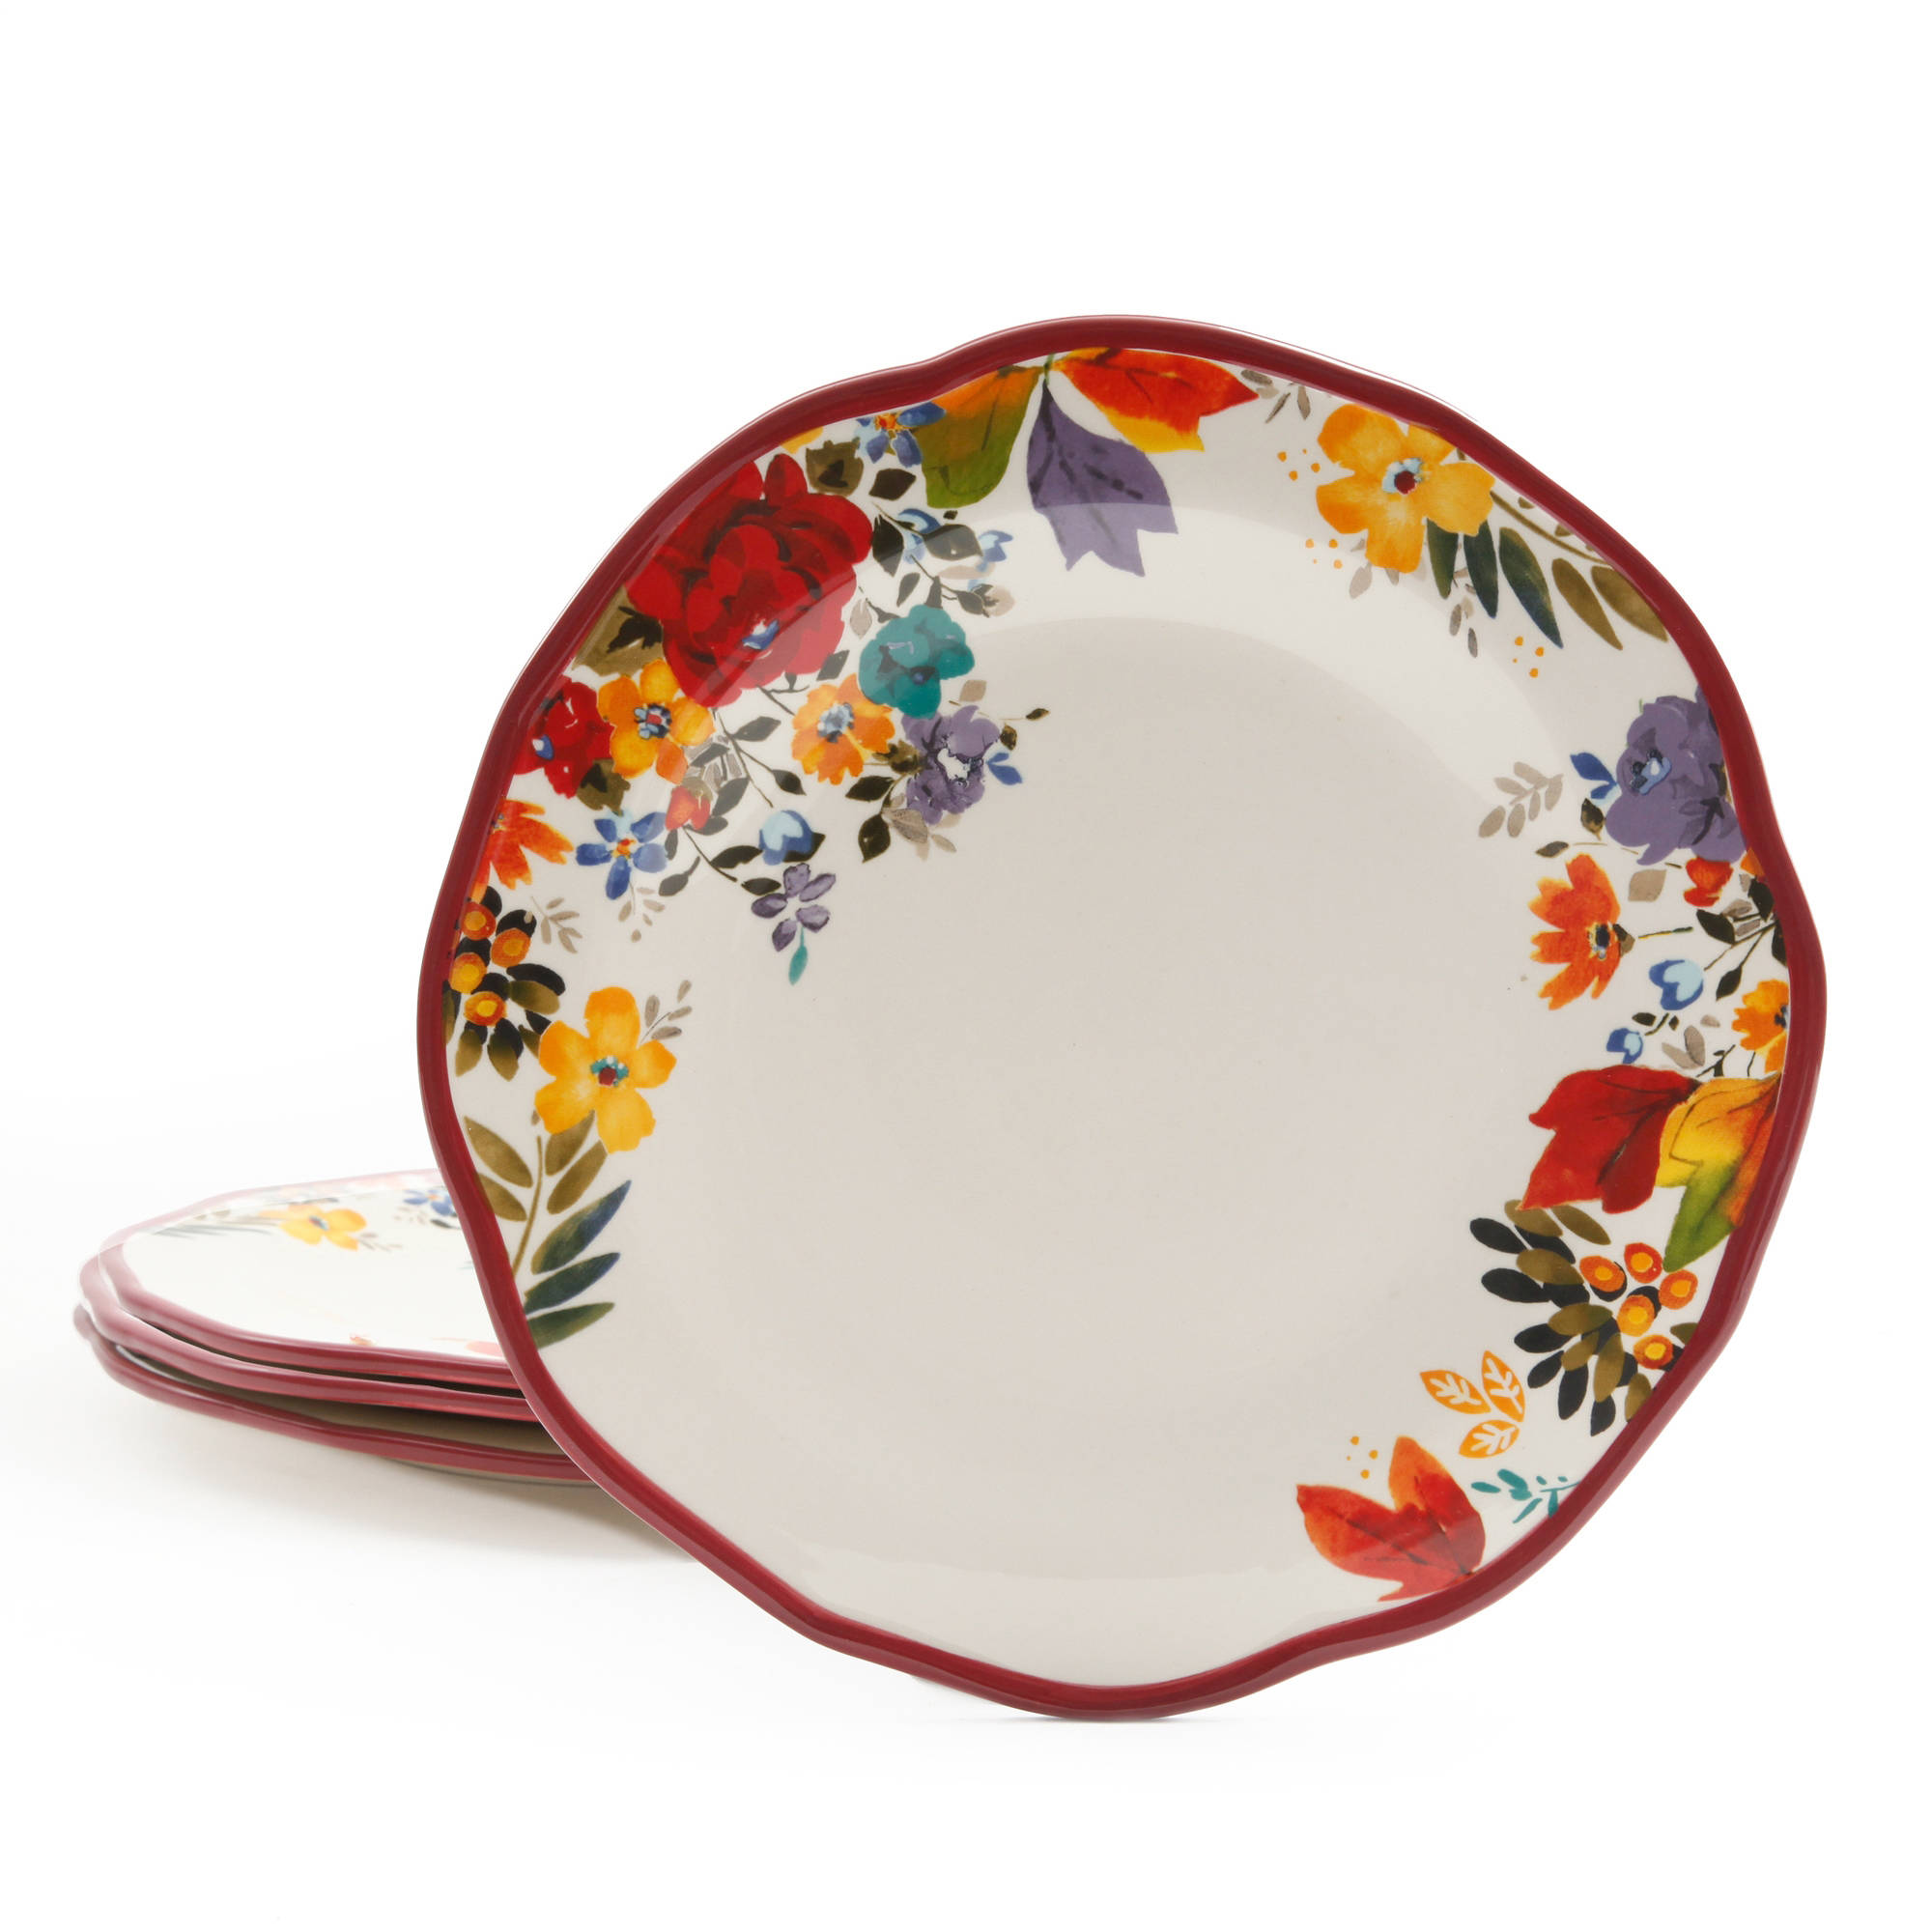 sc 1 st  Walmart & The Pioneer Woman Timeless Floral Dinner Plate Set 4-Pack - Walmart.com